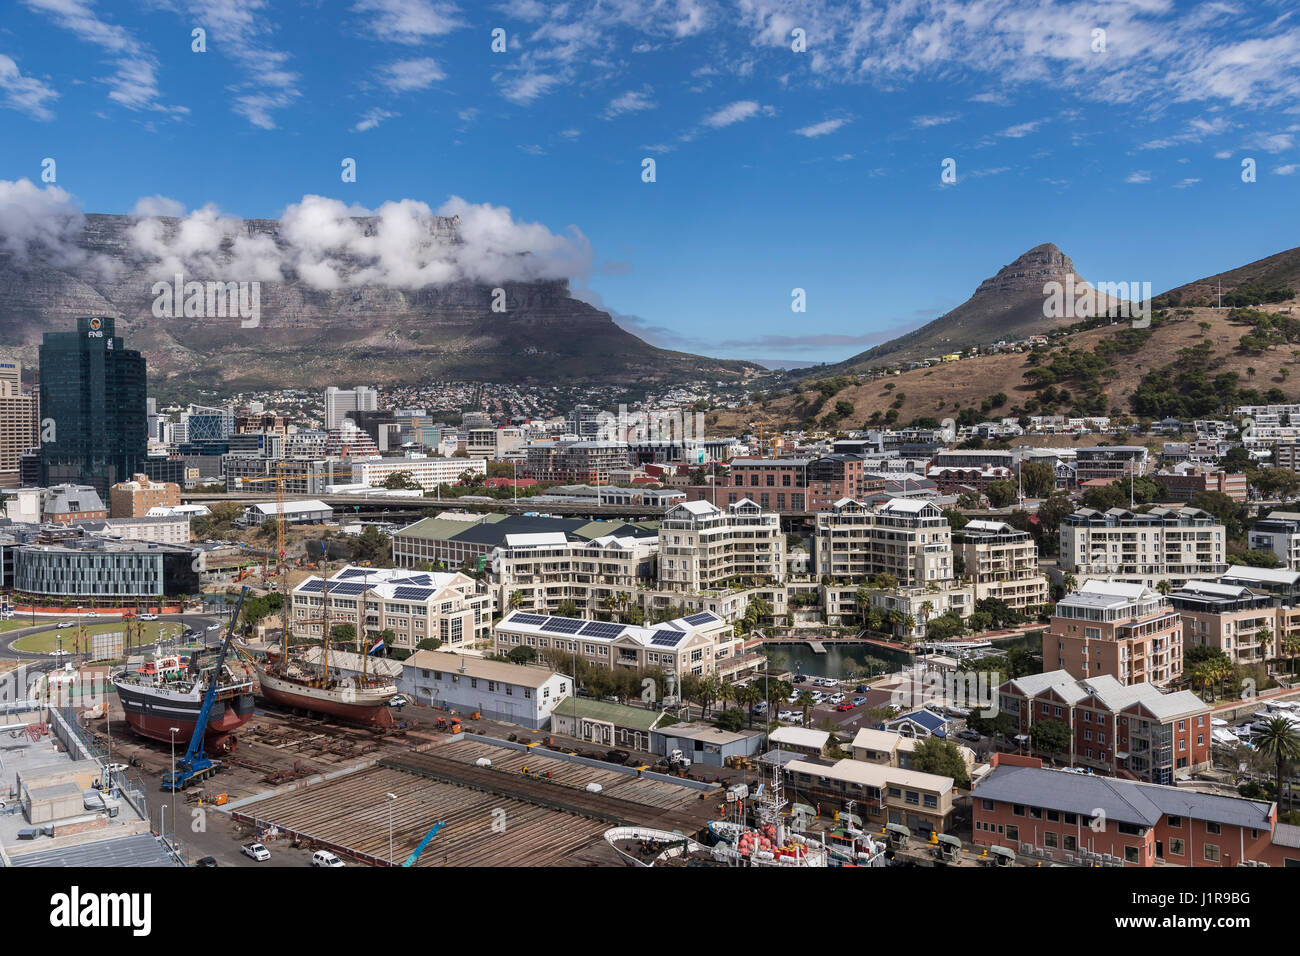 Cityscape with Lionshead and Tafelberg, Cape Town, Western Cape, Republic of South Africa - Stock Image